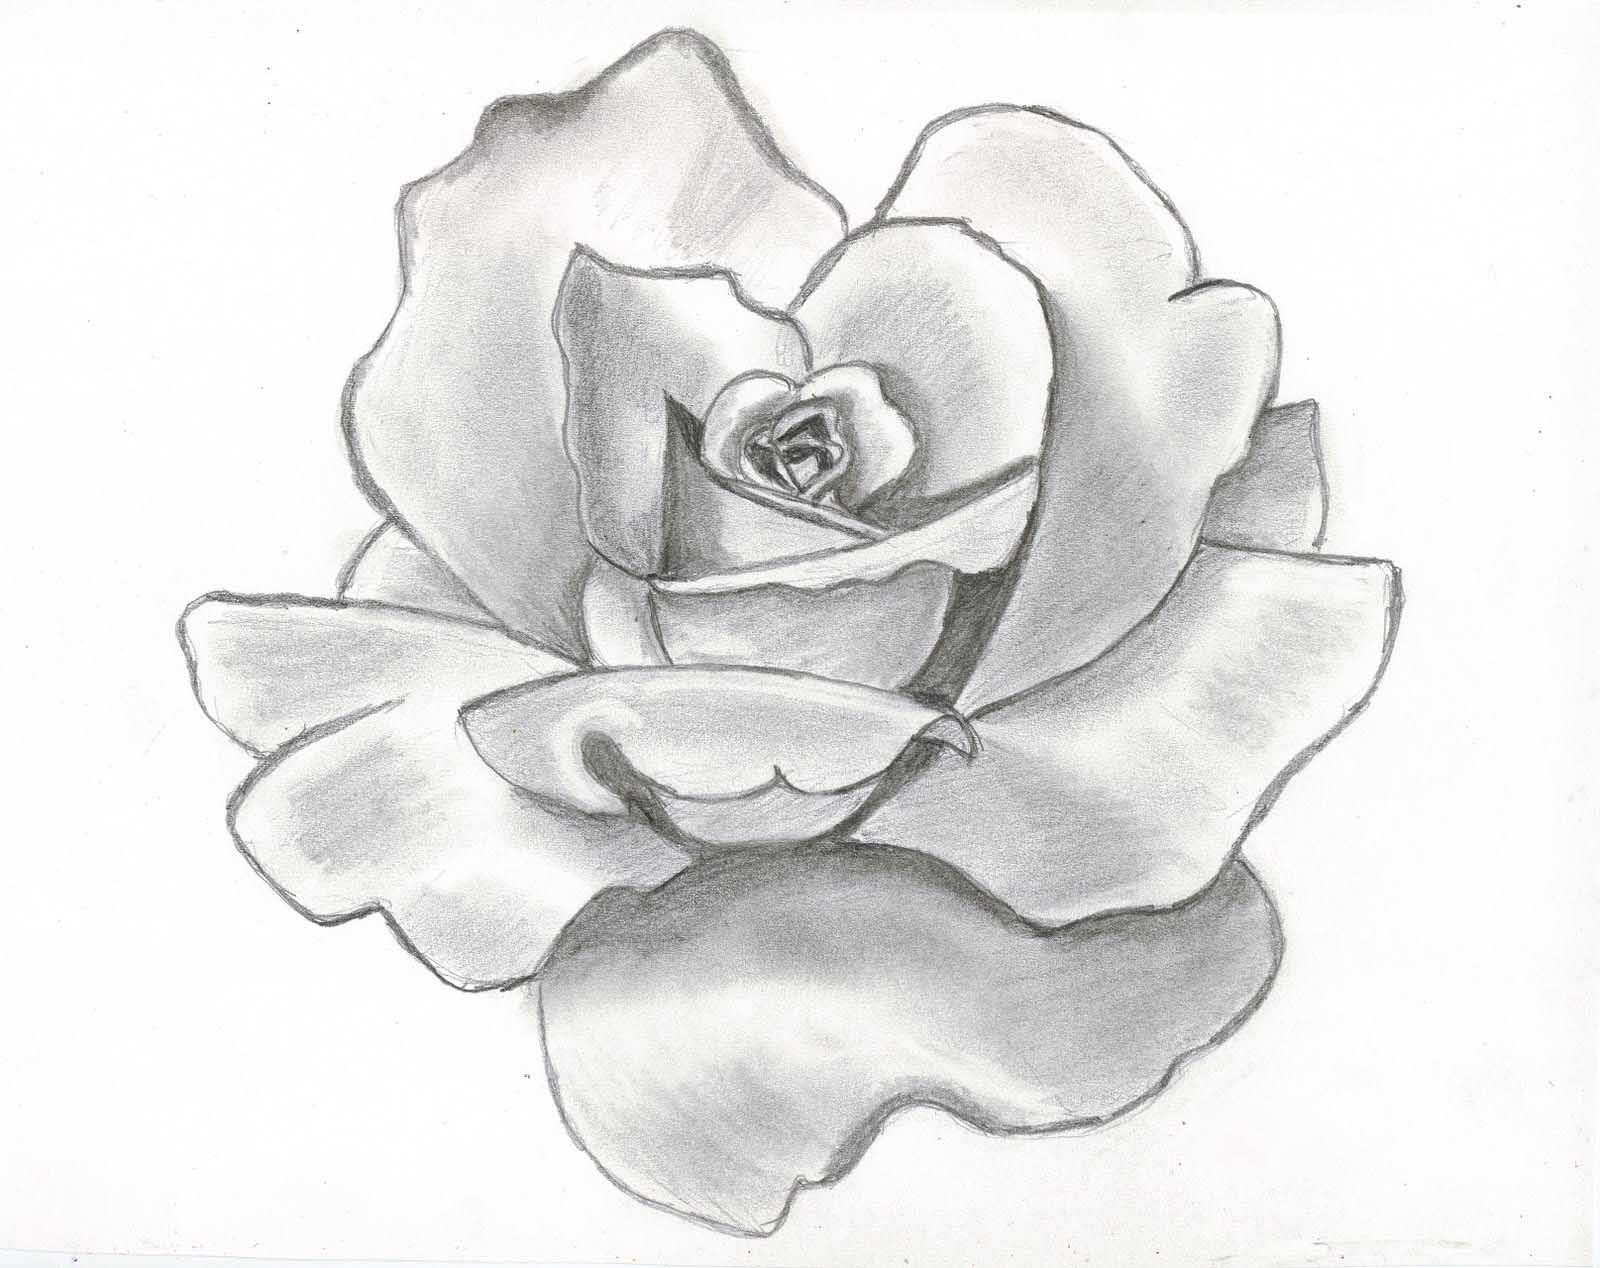 Howto Video With Instructions Lessons Drawing Ideas Easy How To Draw A Rose  Tumblr Solution For